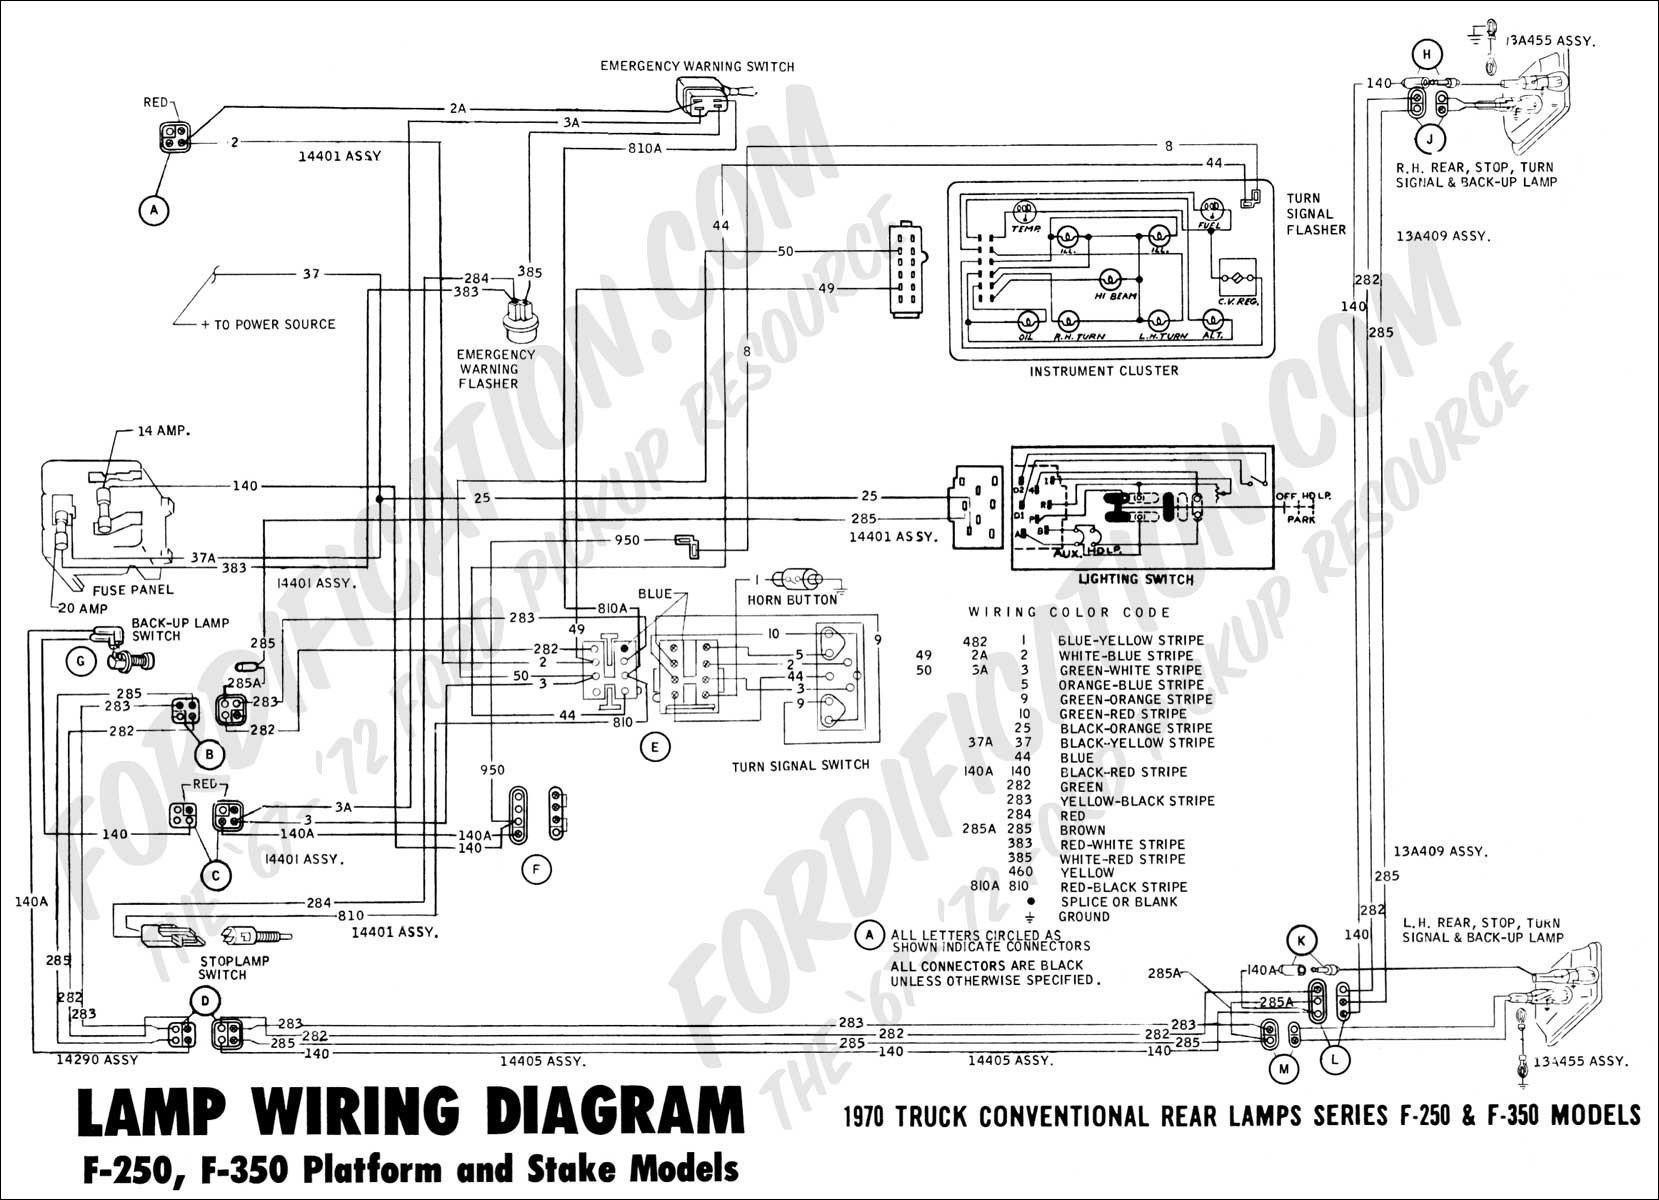 2000 ford F350 Center Brake Light Wire 2000 F350 Tail Light Wiring Diagram Wiring Diagram View A Of 2000 ford F350 Center Brake Light Wire